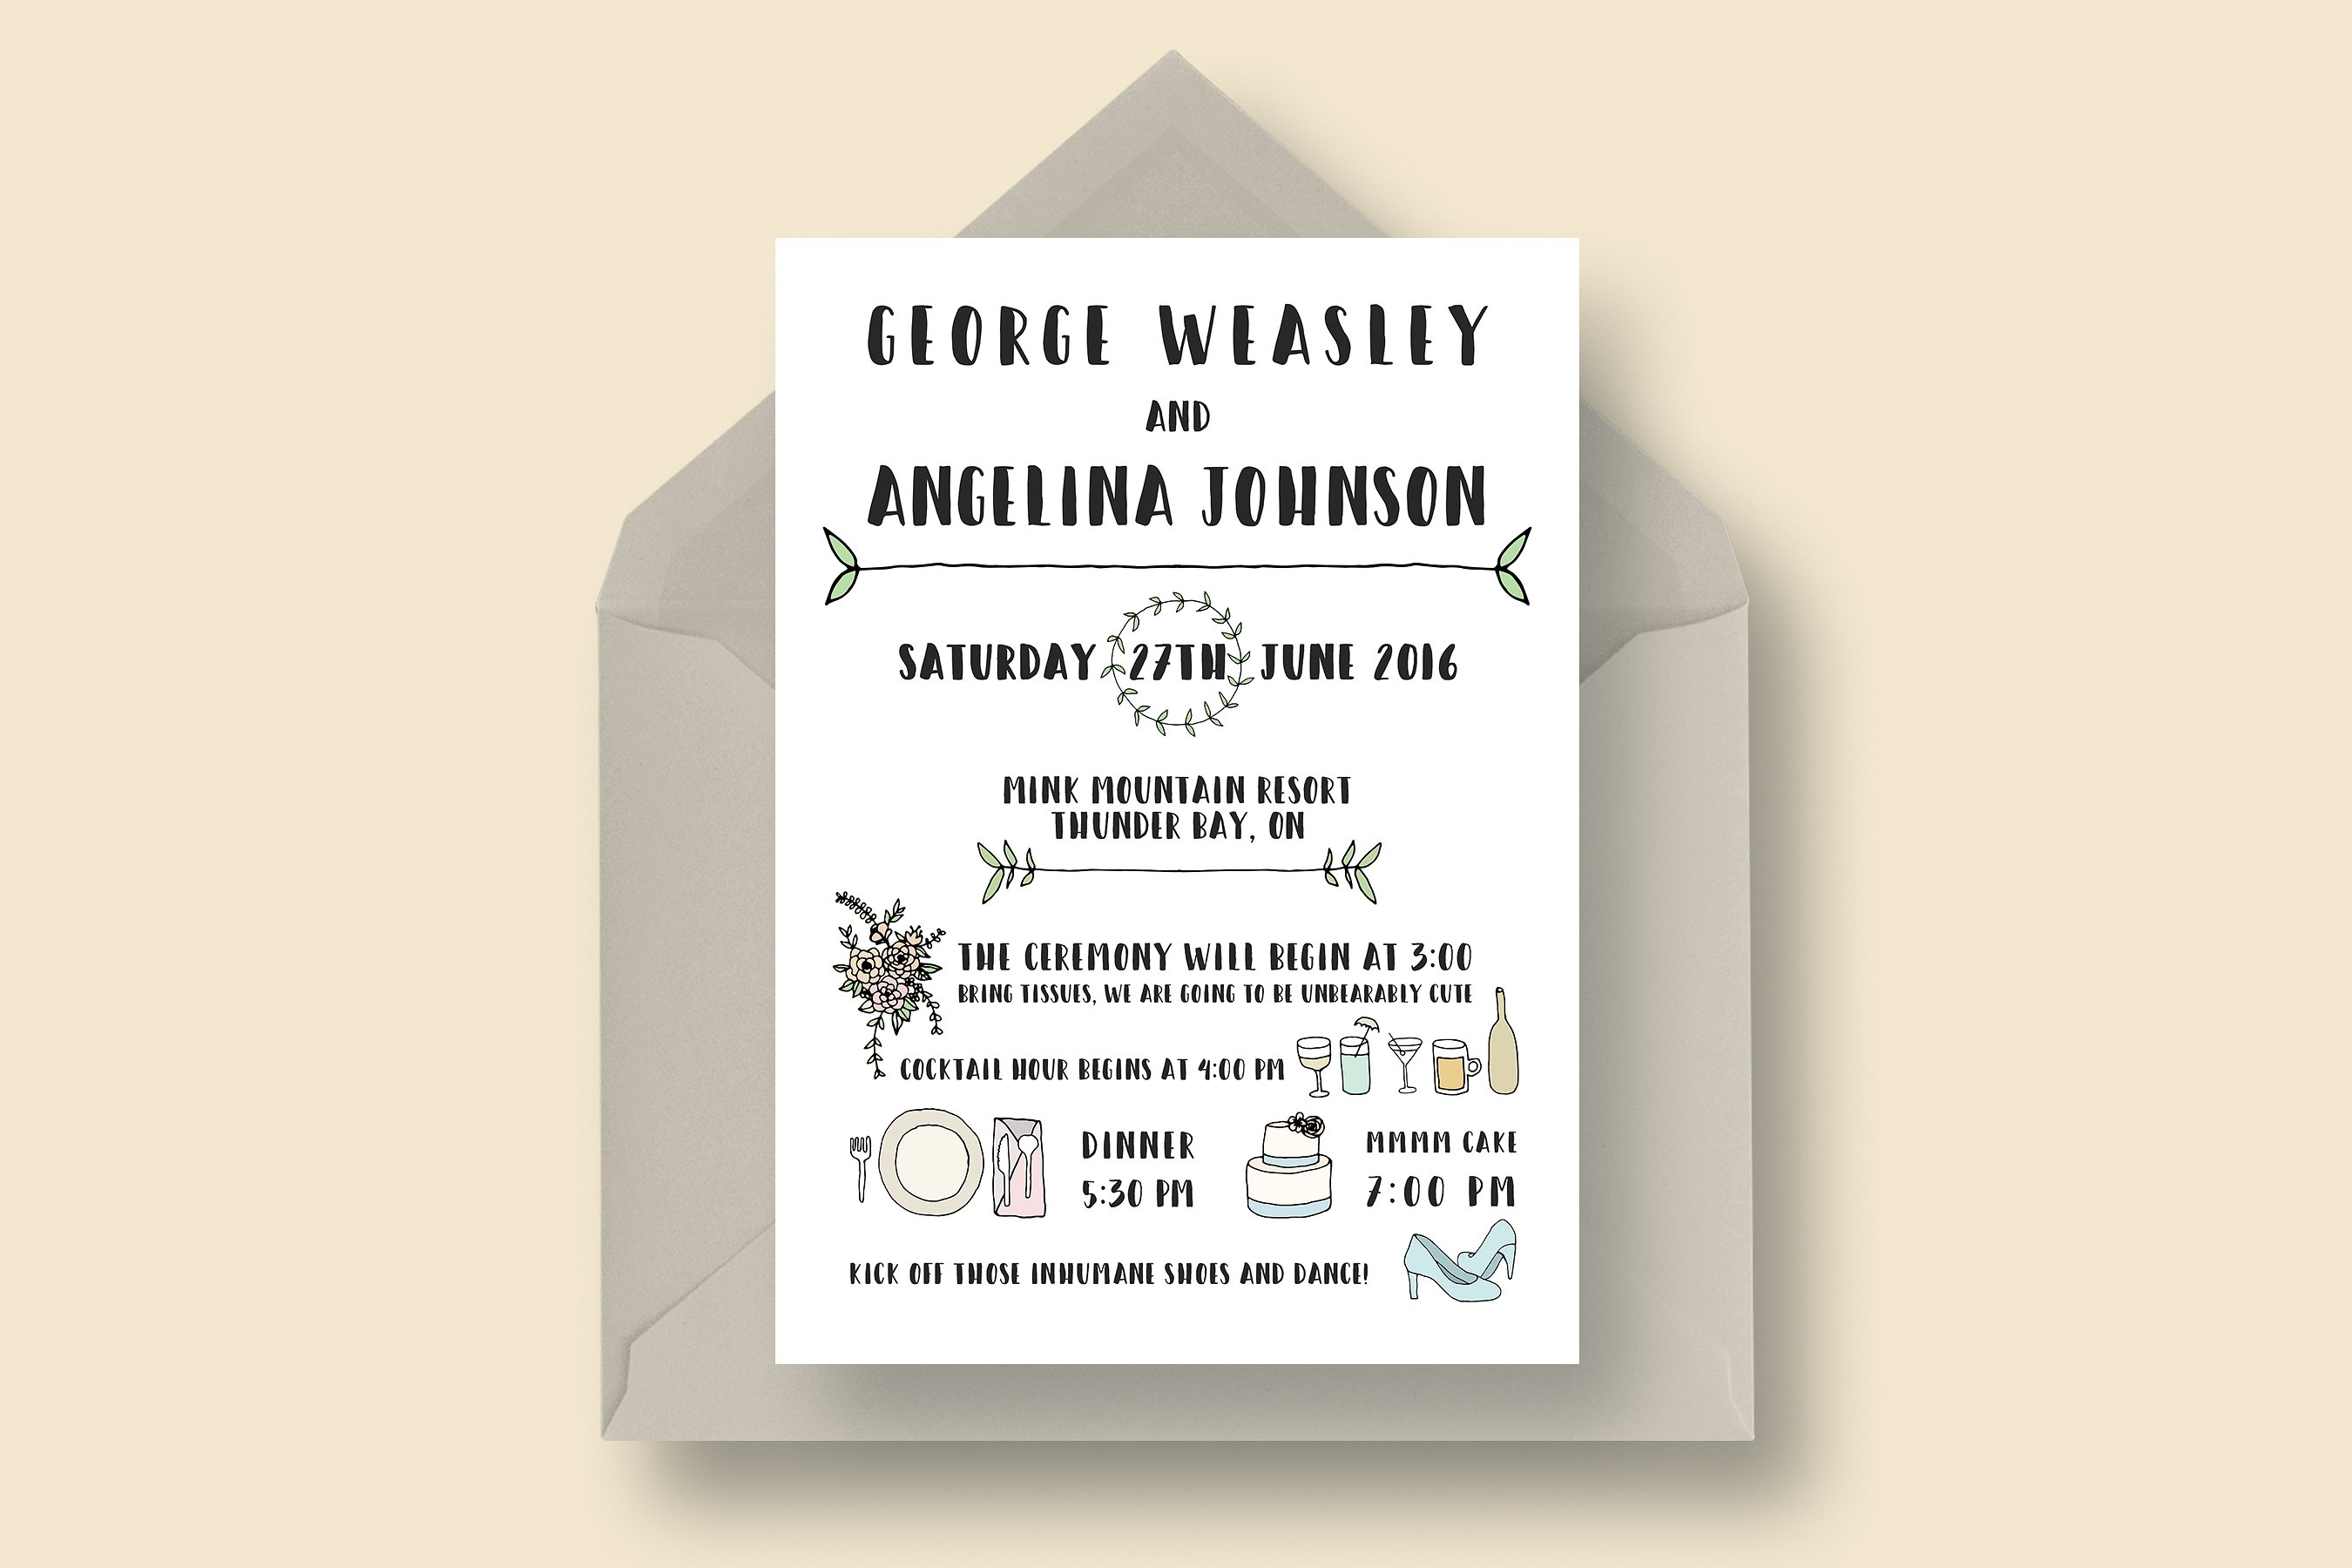 16+ Funny Wedding Invitation Designs and Examples - PSD, AI